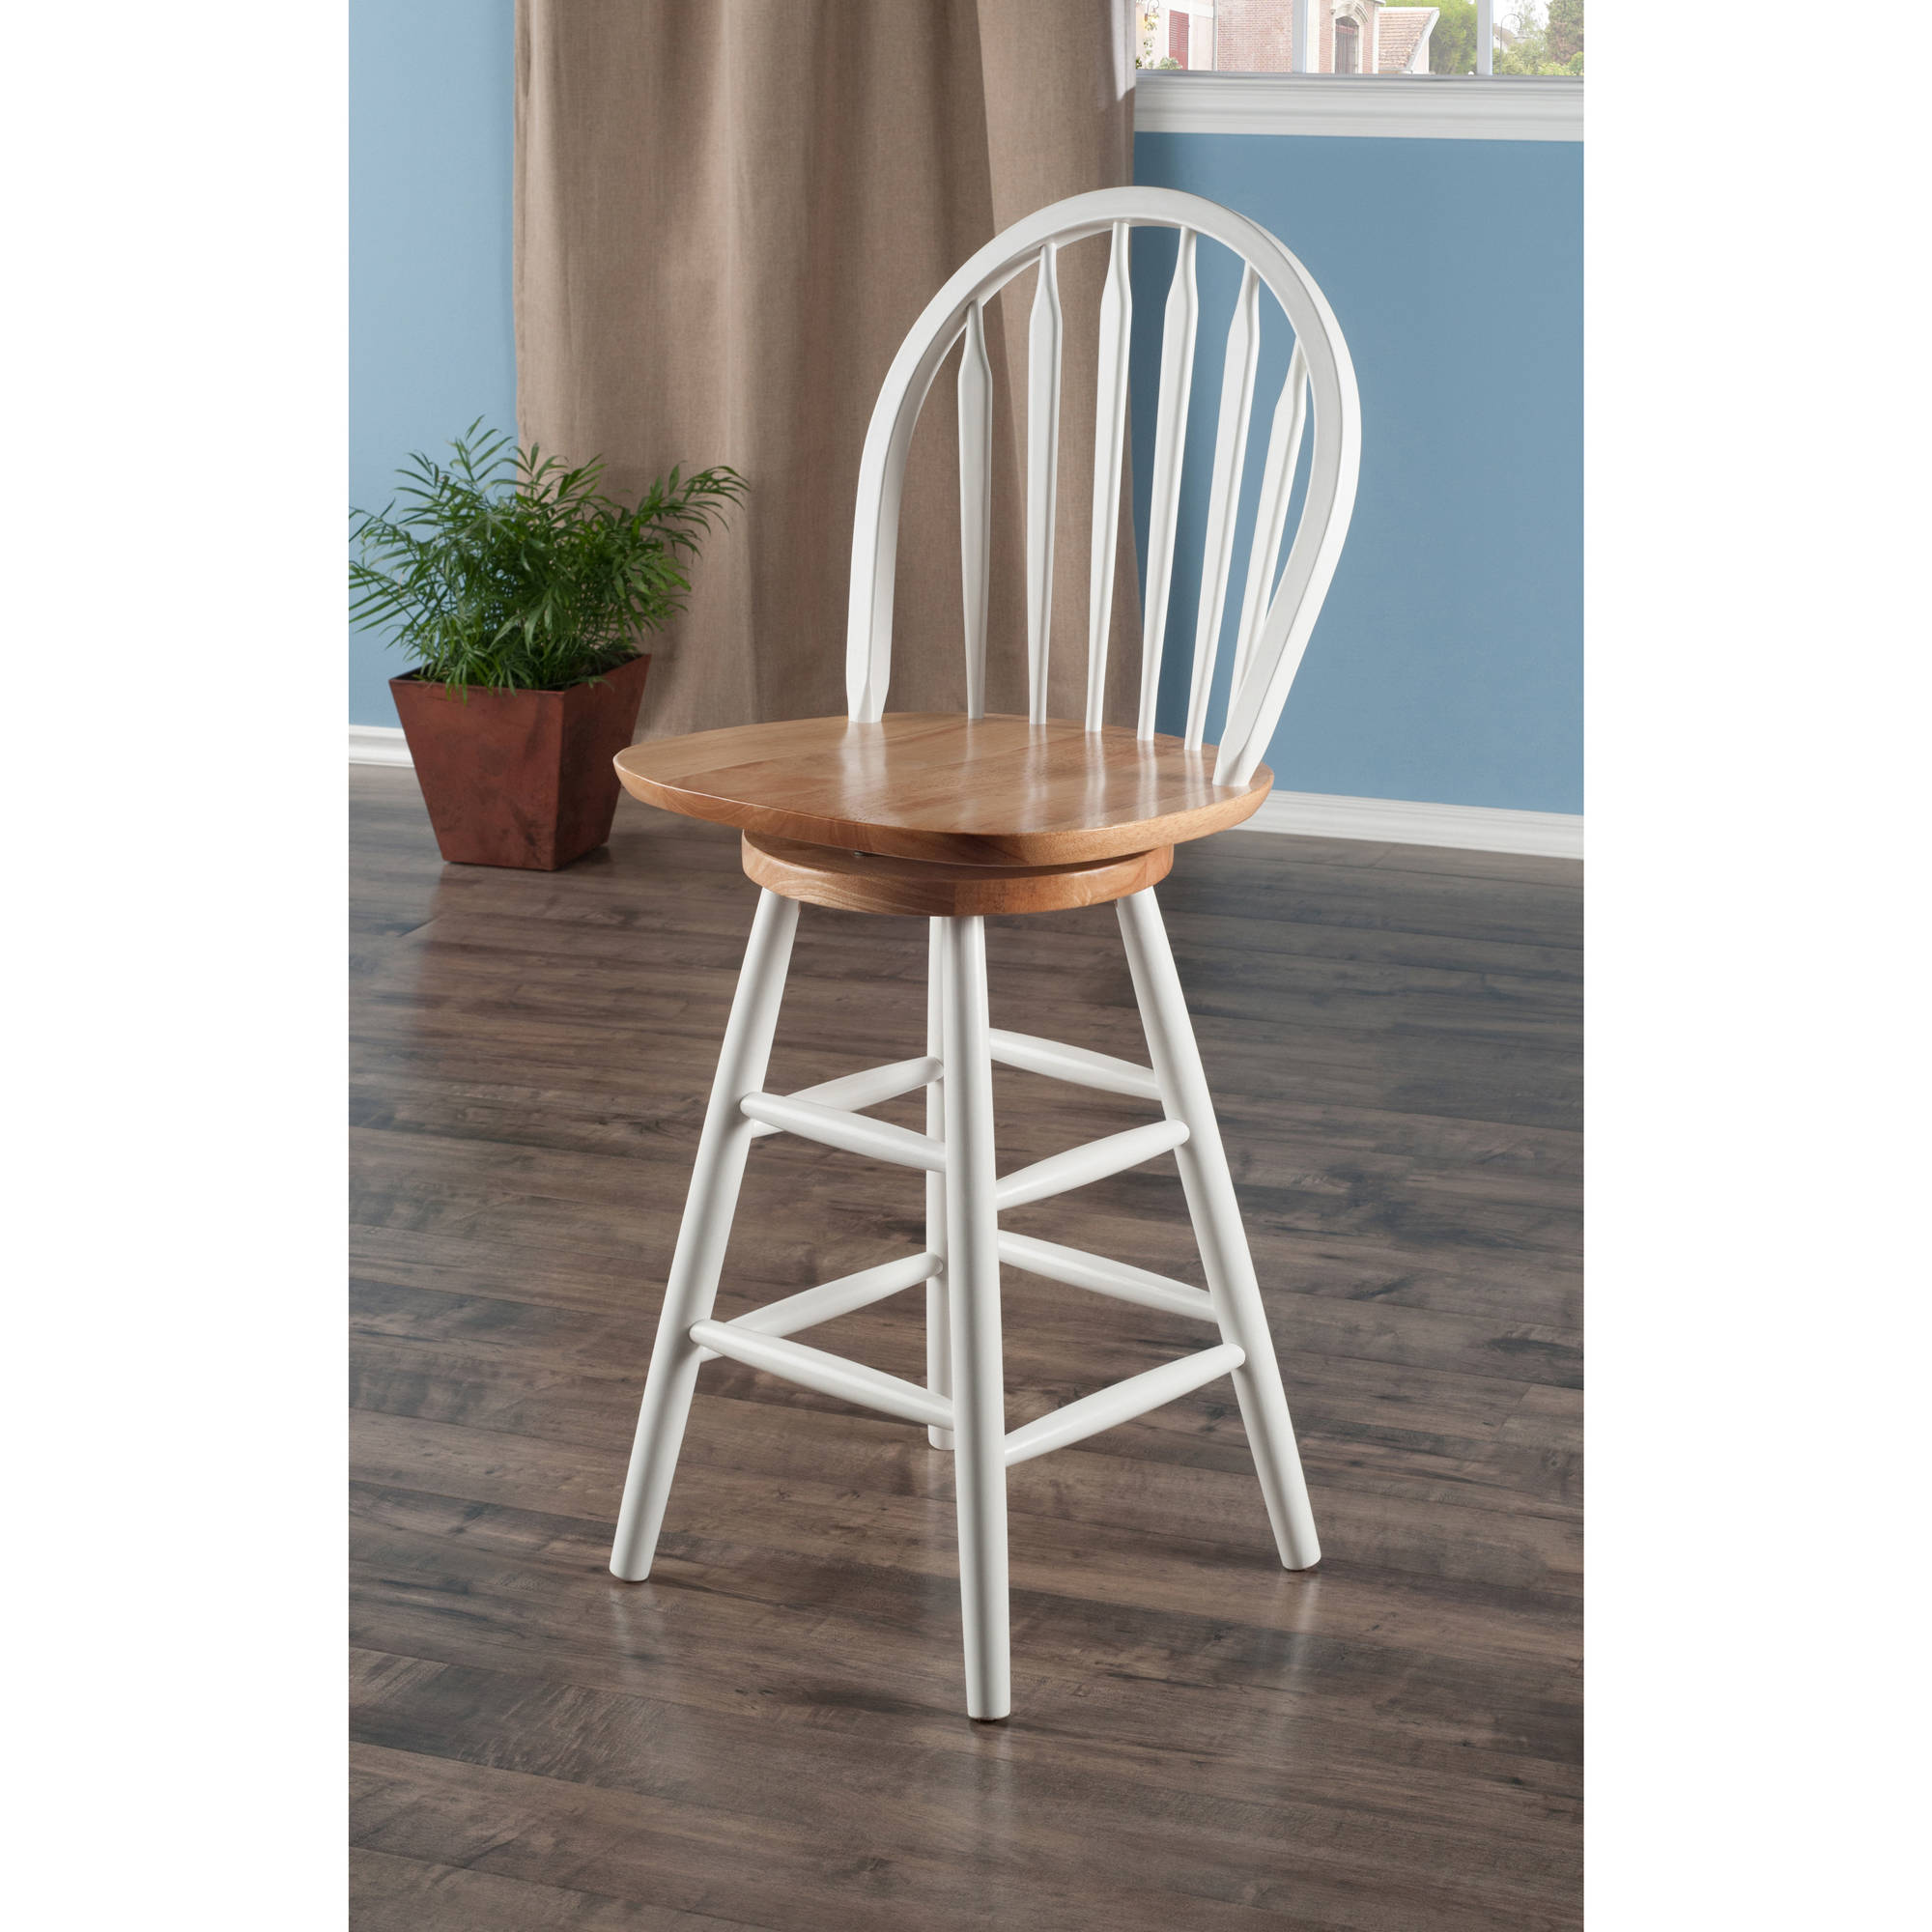 Winsome wood wagner 24 arrow back windsor swivel counter stool walmart com